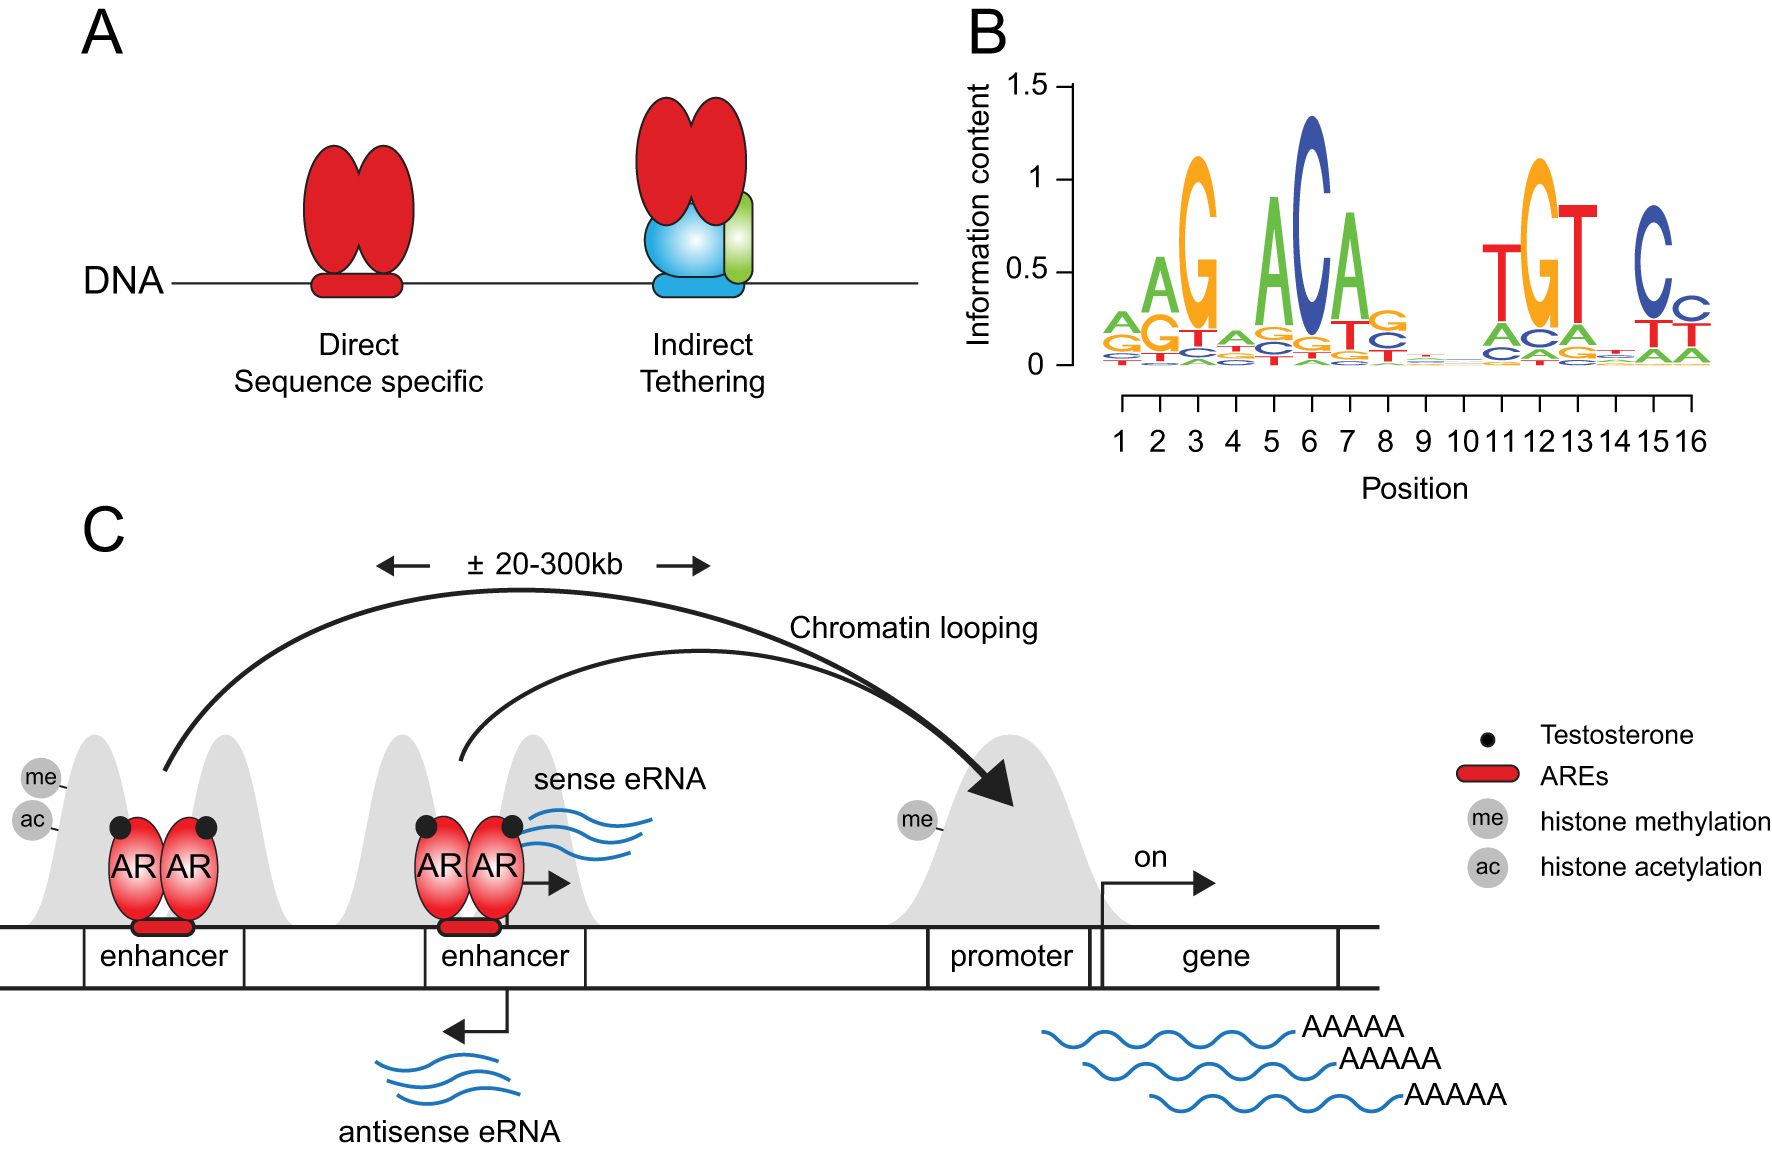 Androgen receptor enhancer usage and the chromatin regulatory